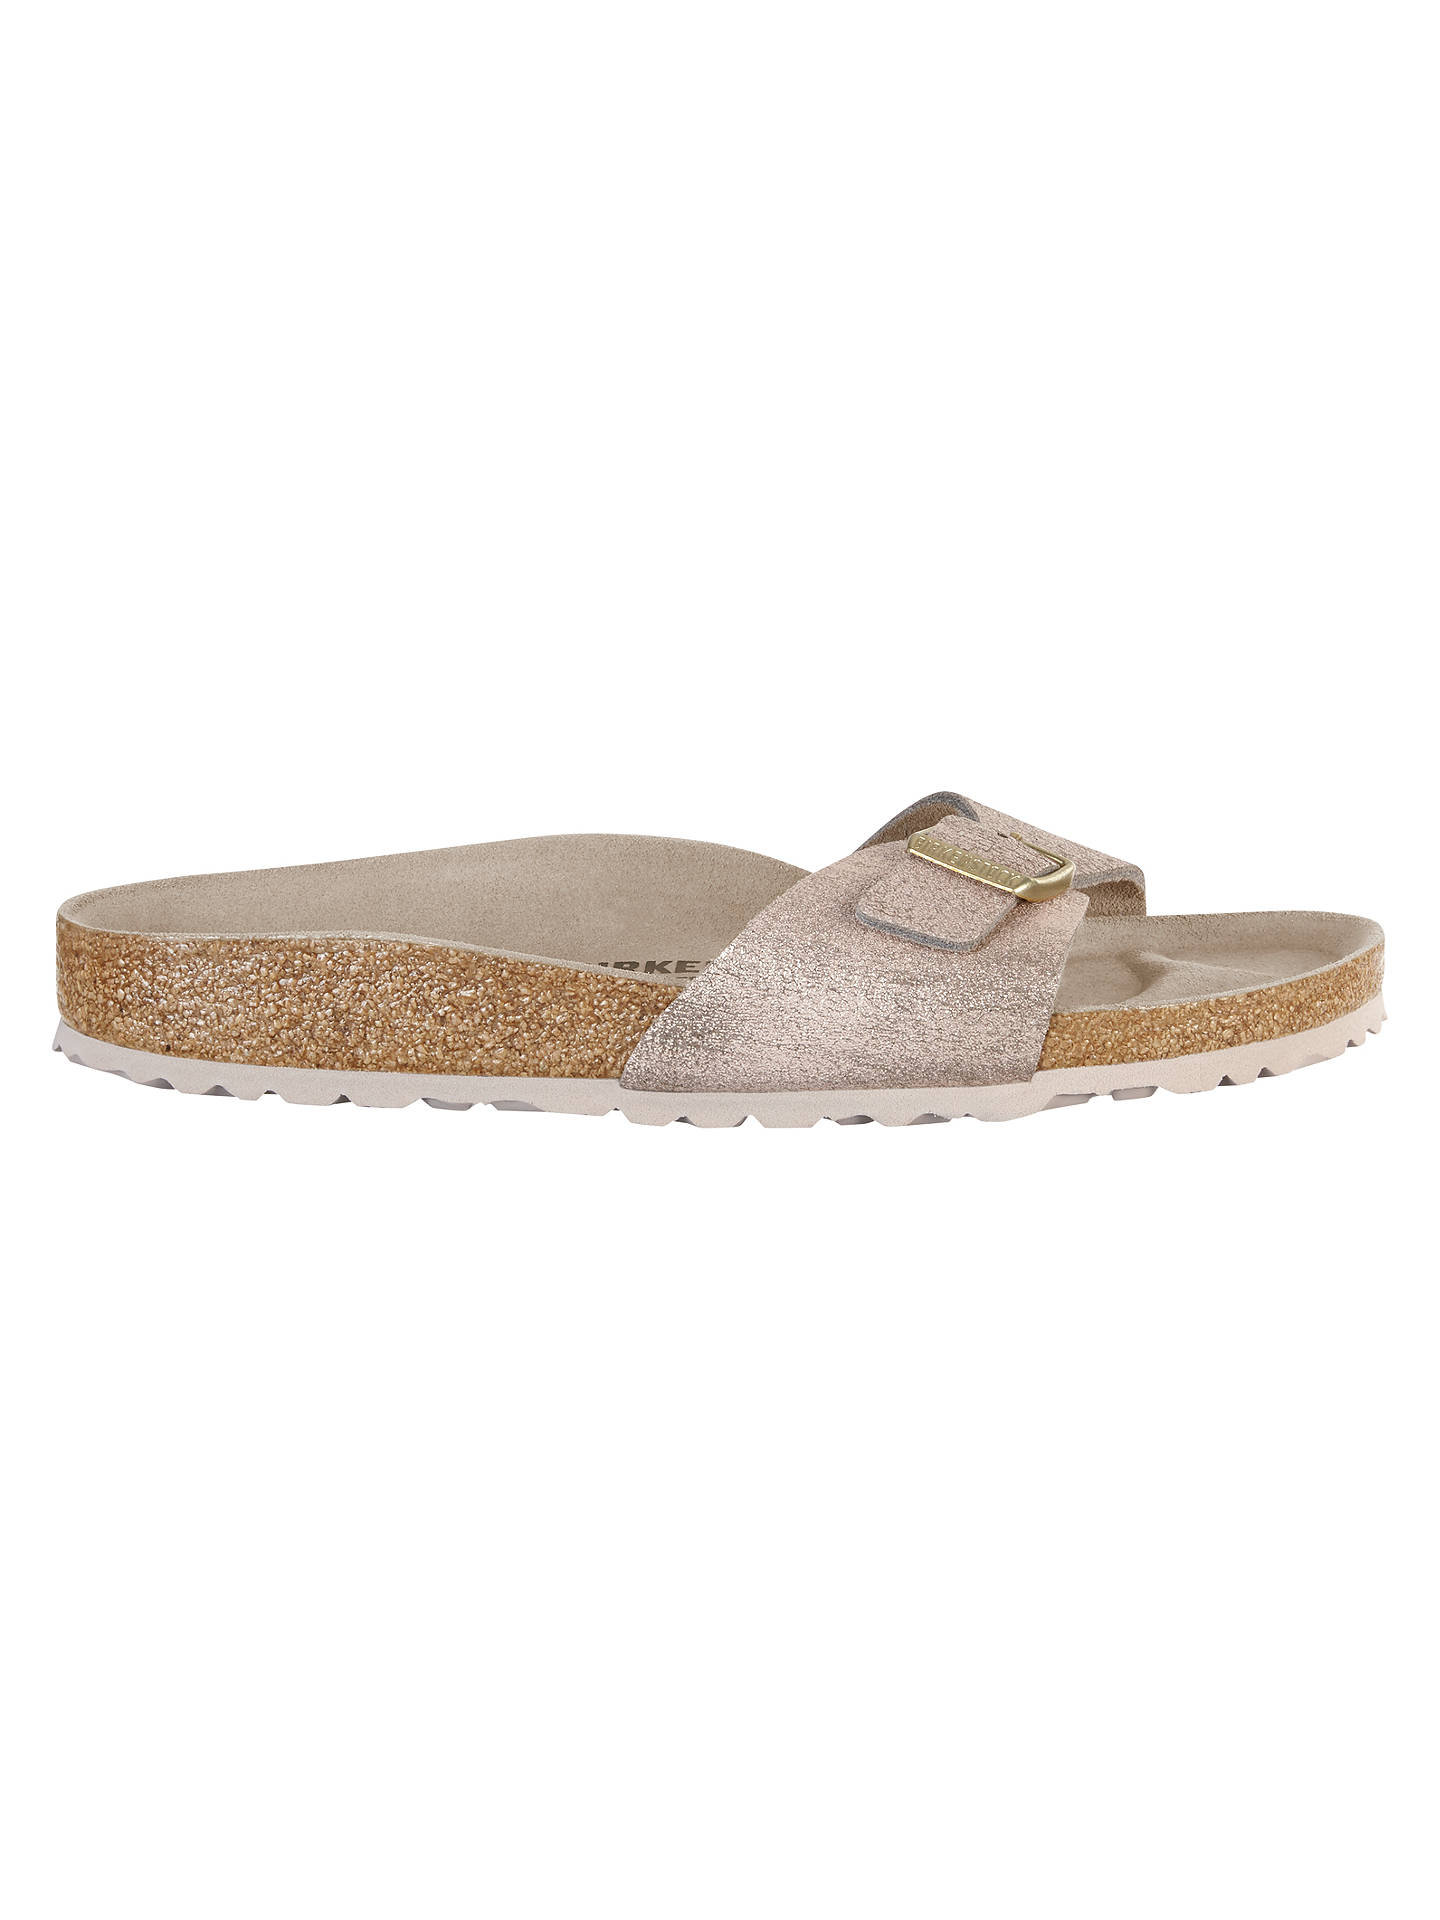 Buy Birkenstock Madrid Slip On Sandals, Rose Gold Suede, 7 Online at johnlewis.com